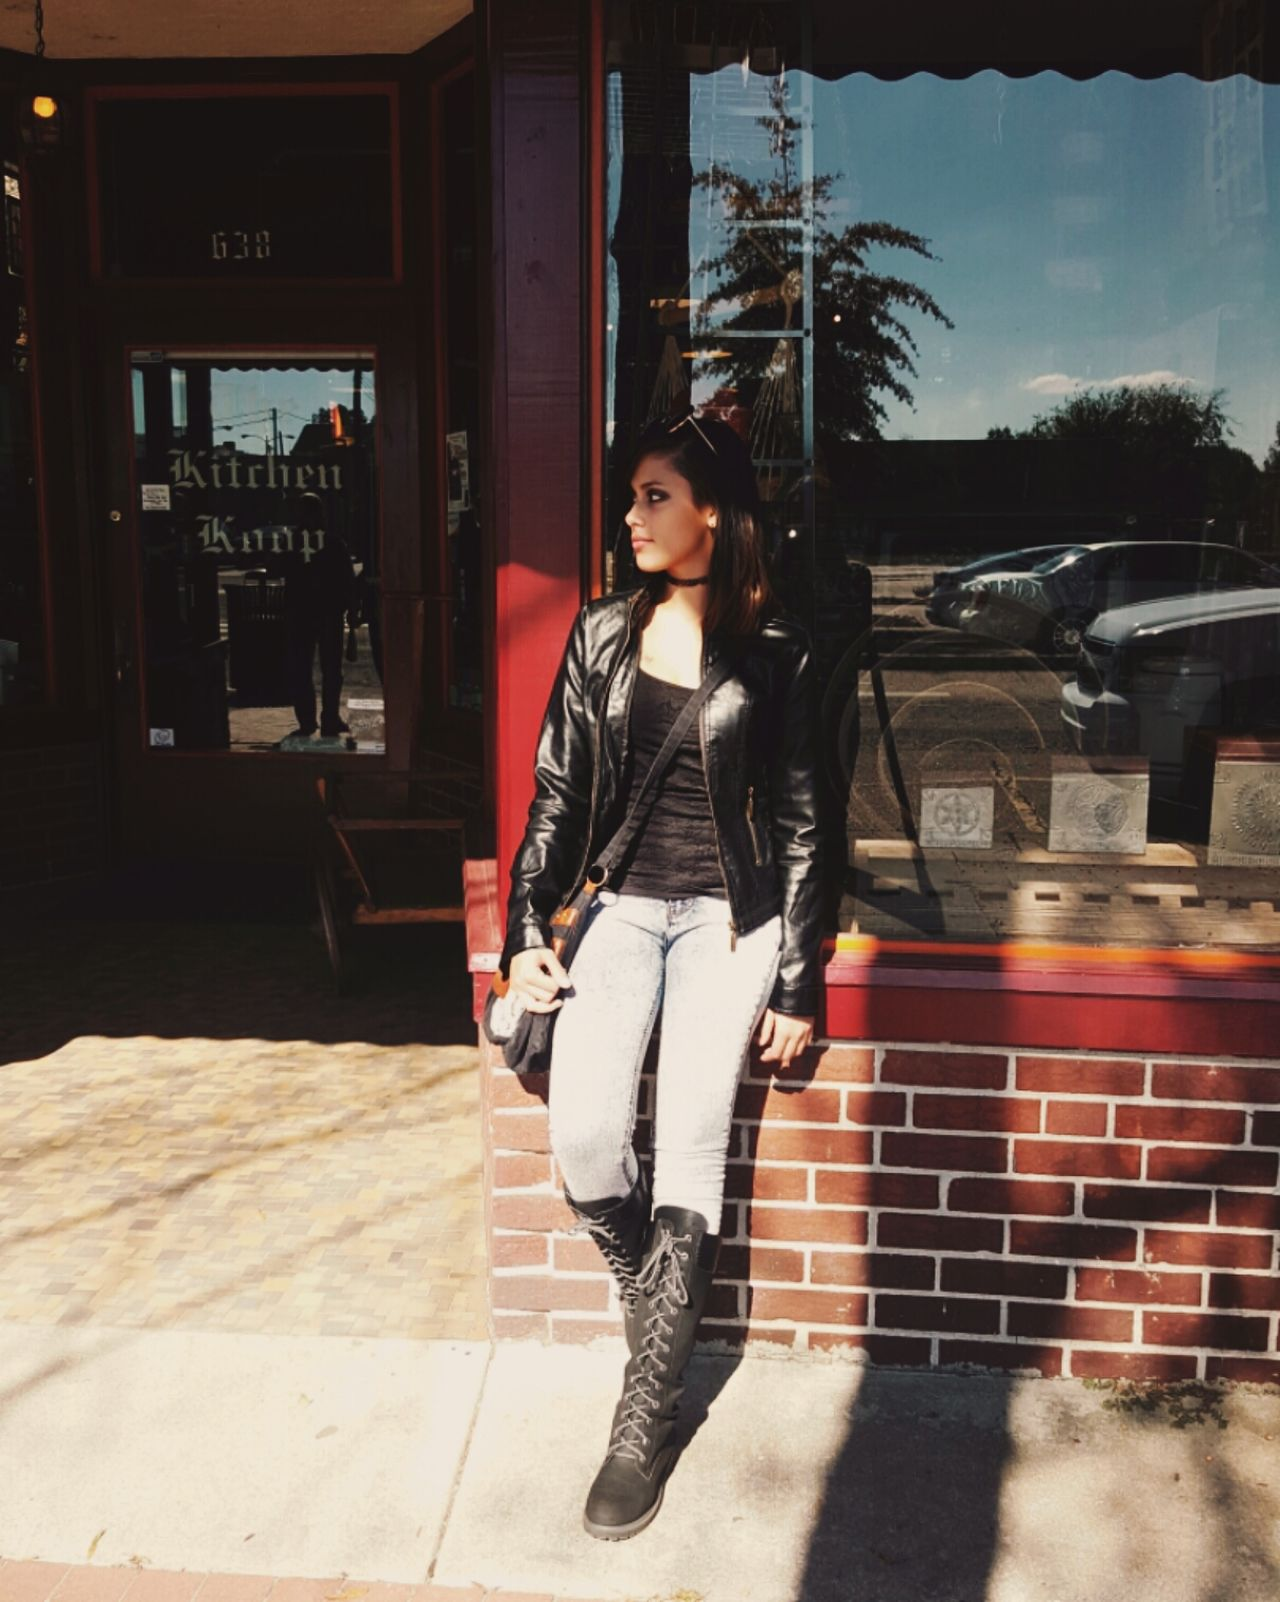 Casual Clothing Built Structure Outdoors Beauty Young Woman Leather Jacket Boots Brick Wall Chill Badass Hipster Bad Girl  Casual